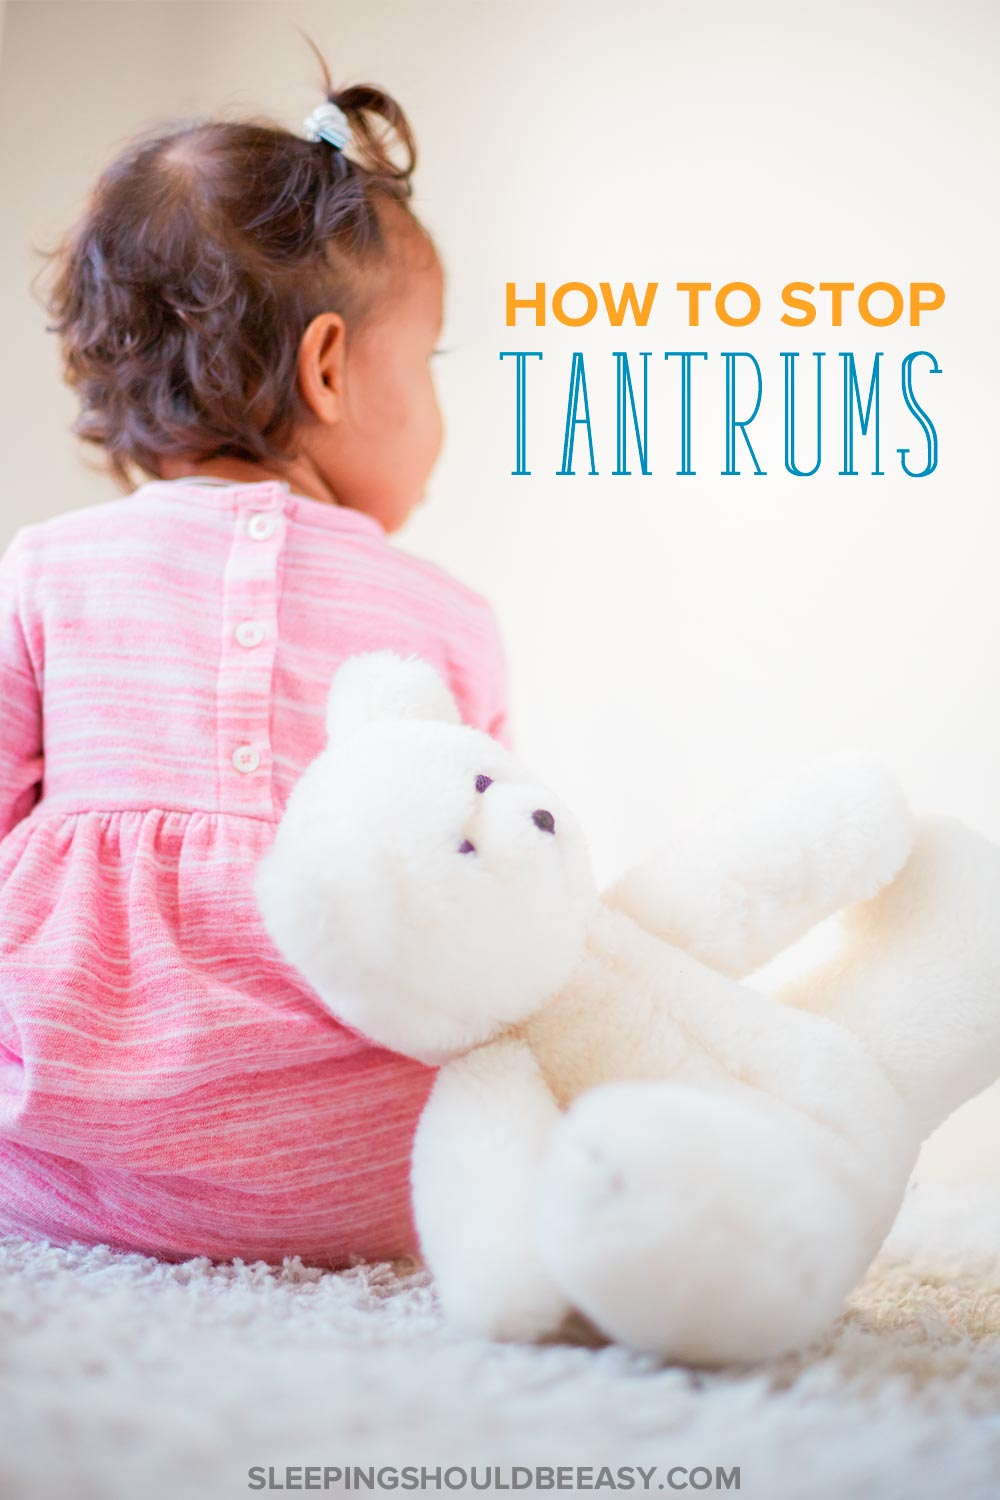 Girl with her back turned and a teddy bear: How to stop tantrums